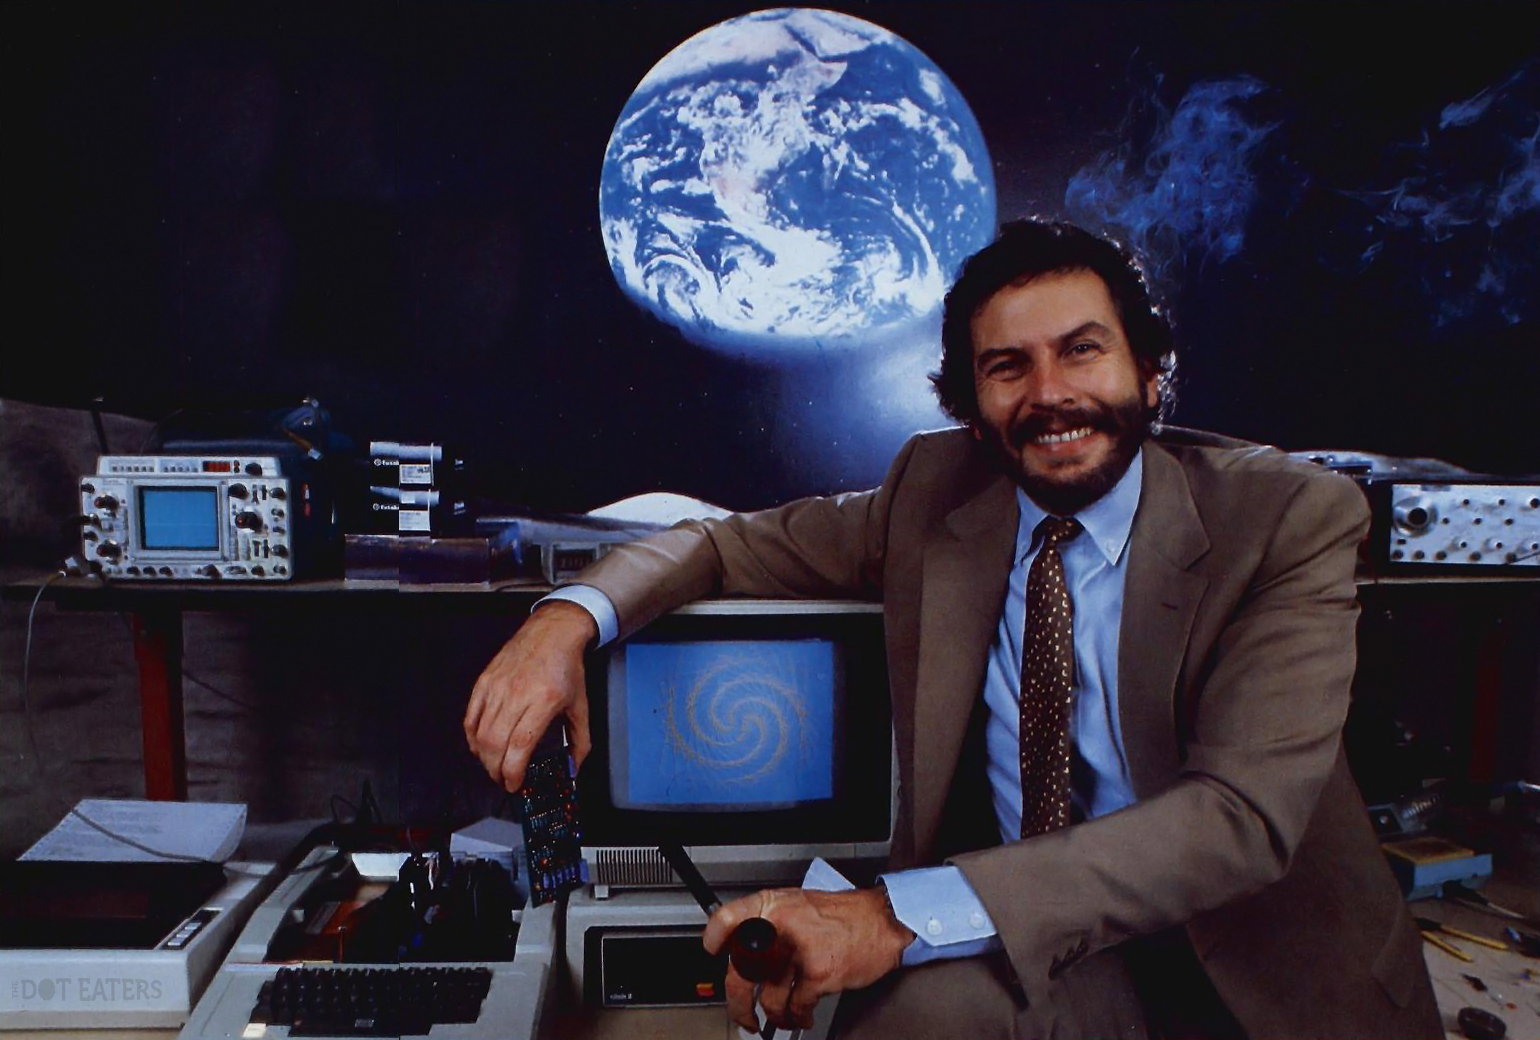 1984 image of Nolan Bushnell at Catalyst Technologies